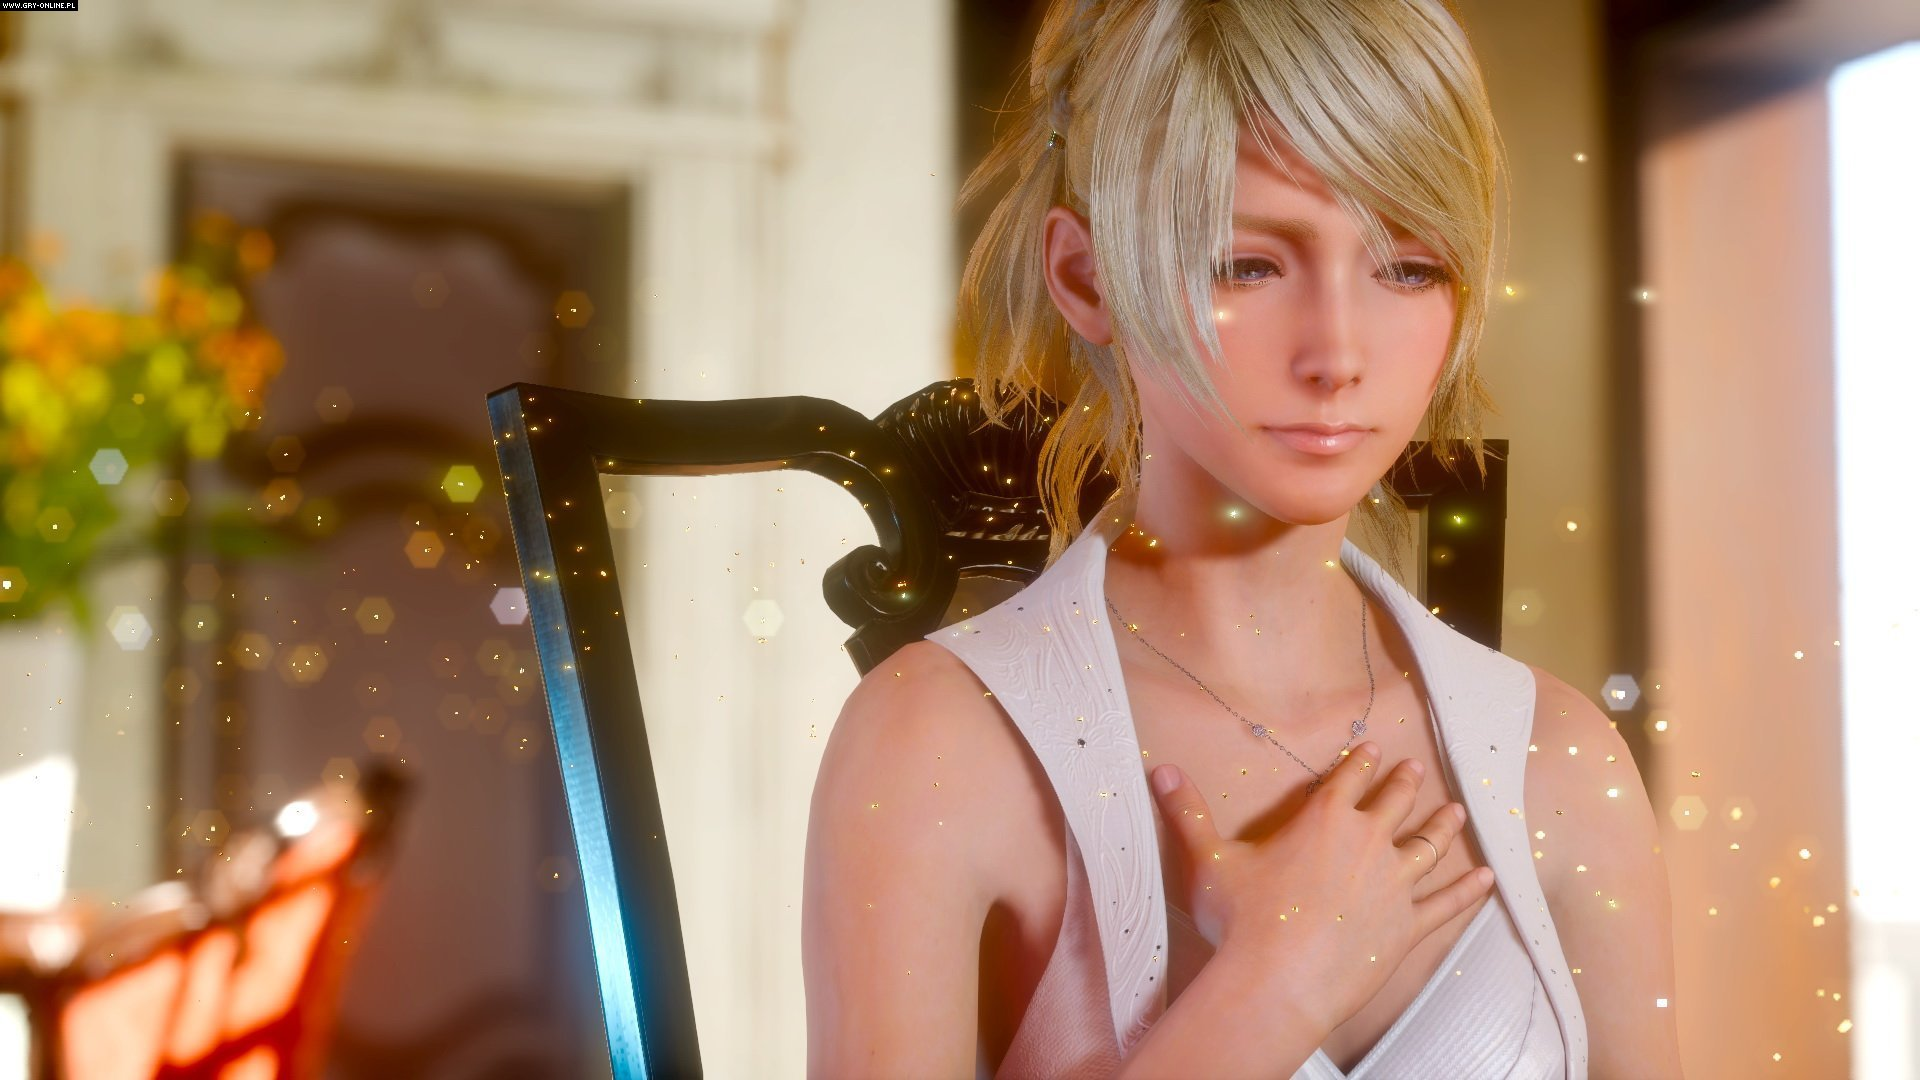 Final Fantasy XV PS4, XONE Gry Screen 158/393, Square-Enix / Eidos